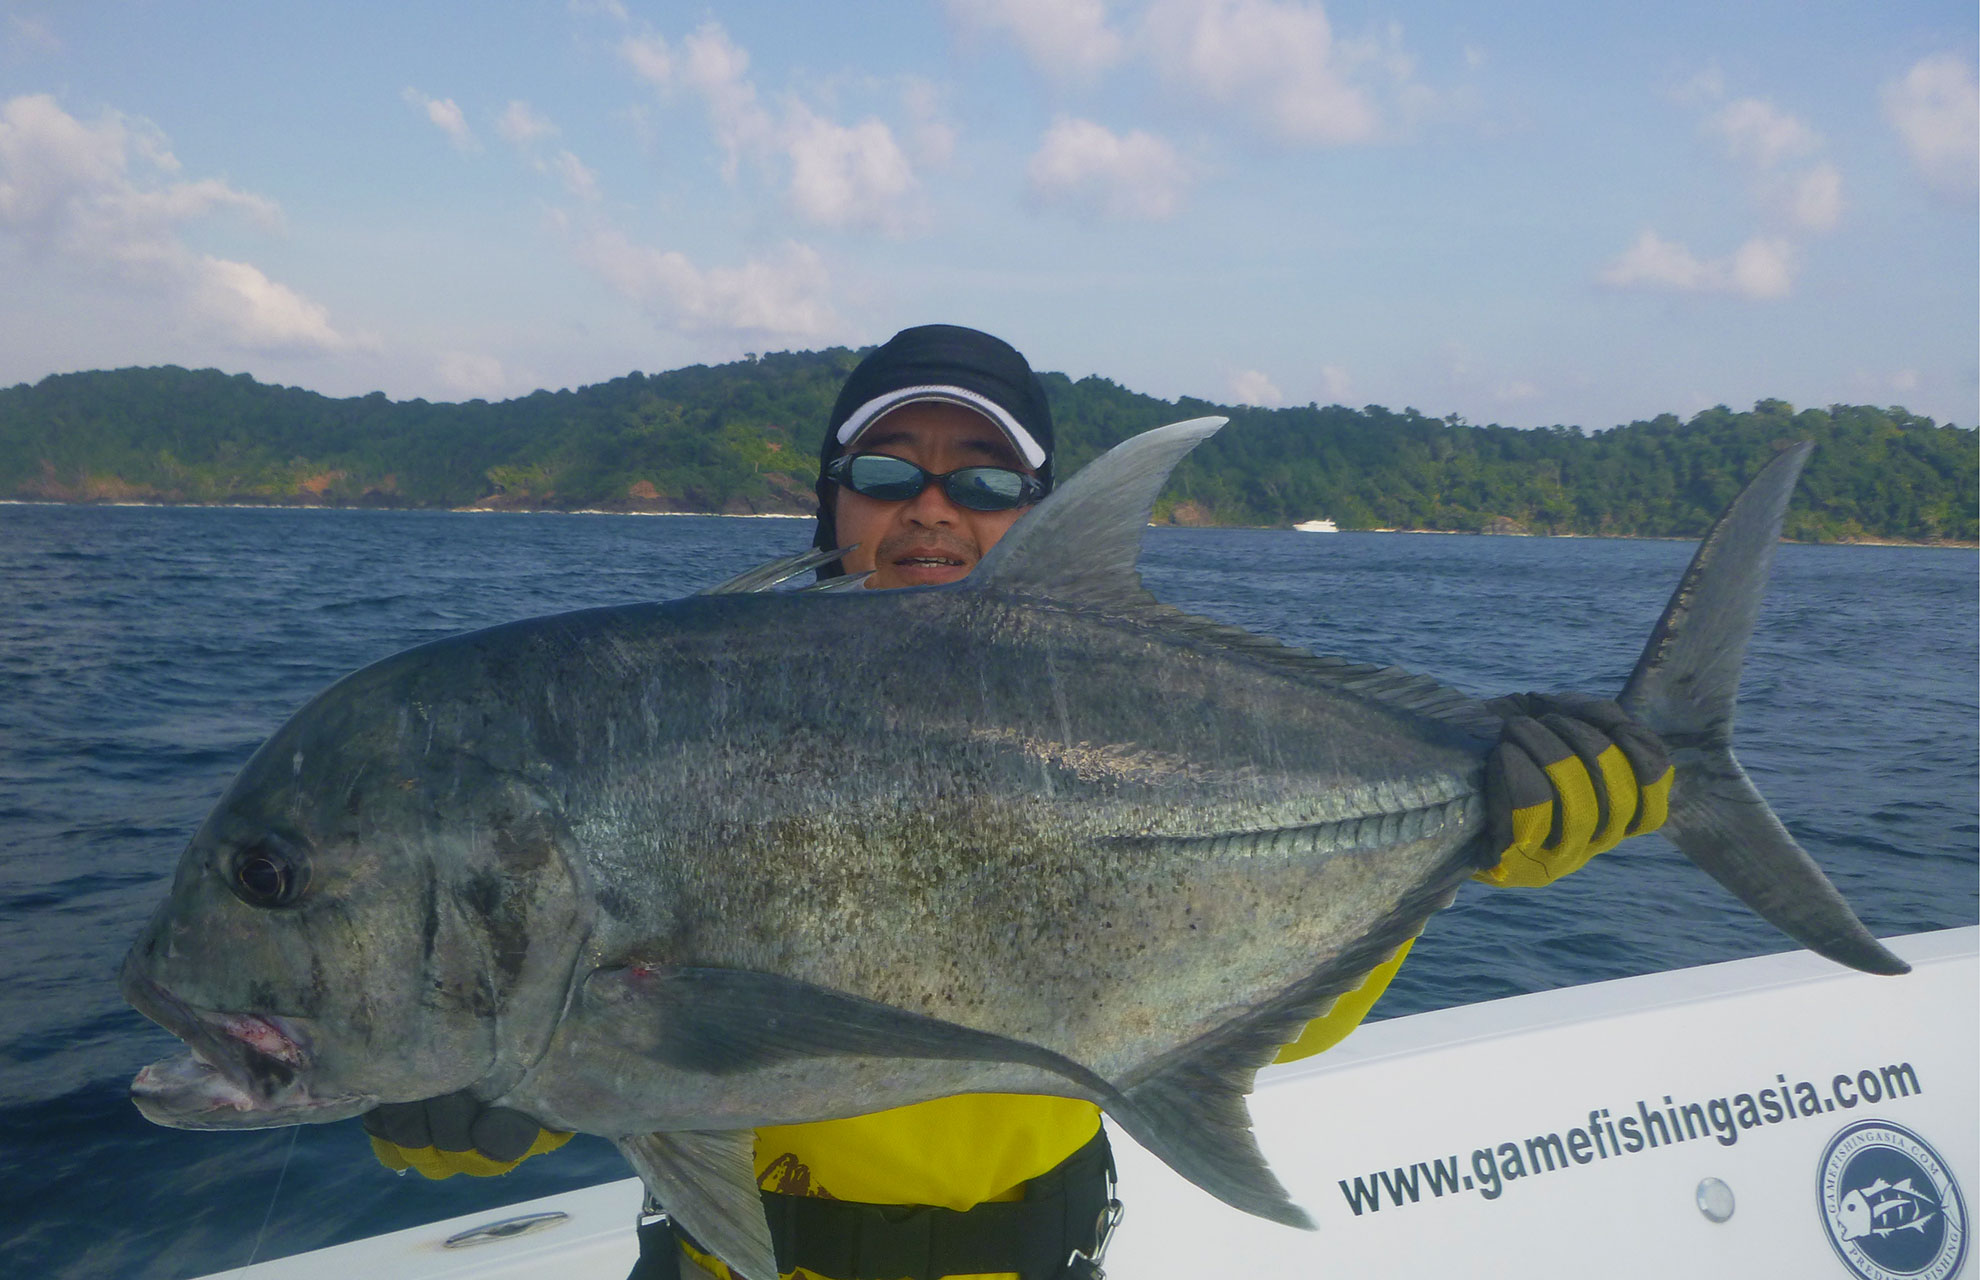 No.14_Giant-trevally_fishing_popping_andaman_shimano-stella_gamefishingasia_boat_big-fish_gtpopping_boat-charter